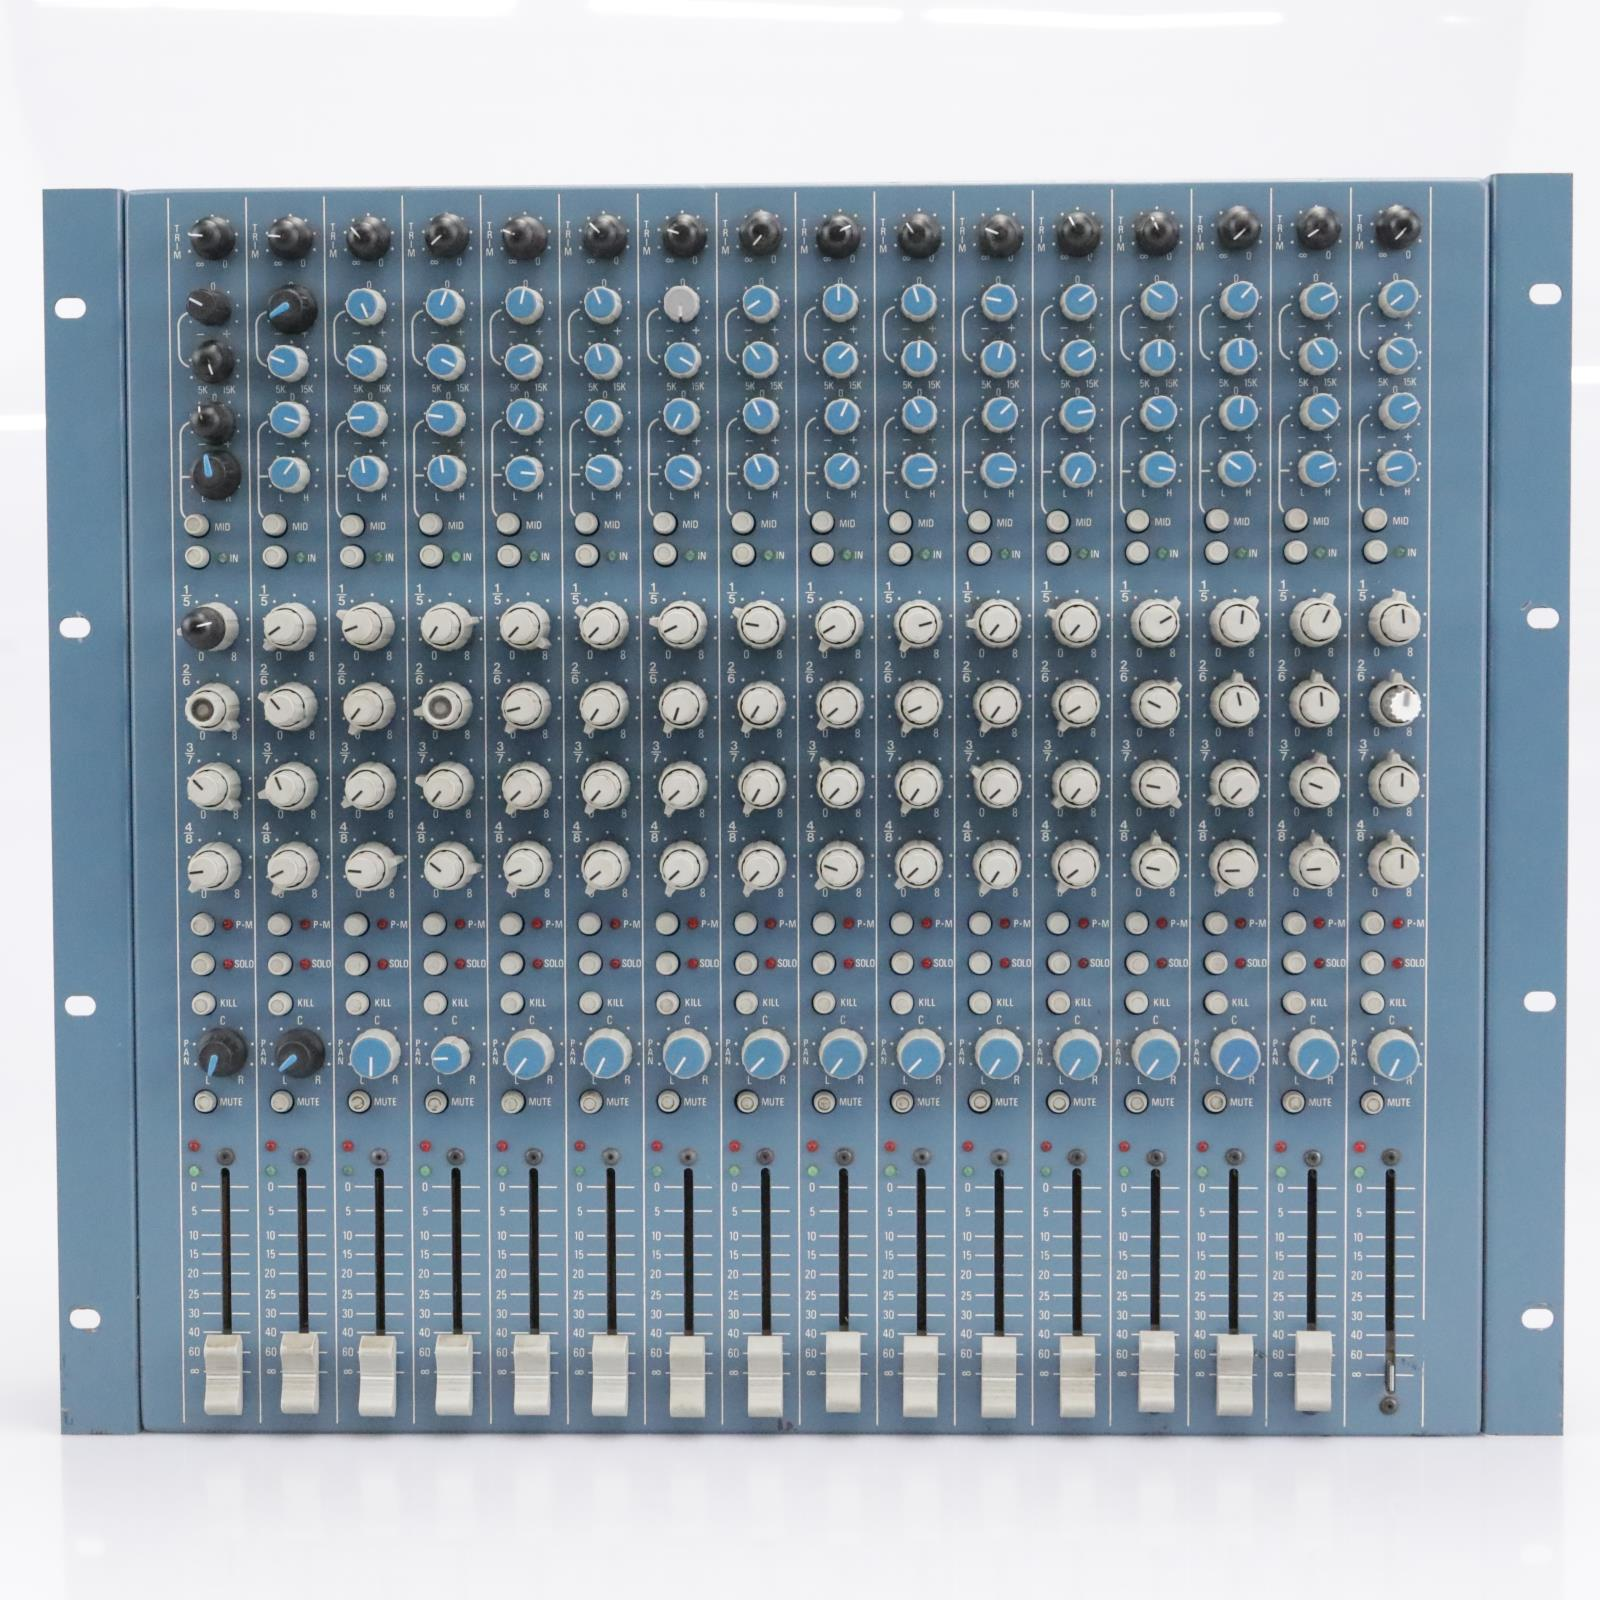 Speck Electronics SSM-EX 16-Channel Rackmount Expandable Mixing System #42808